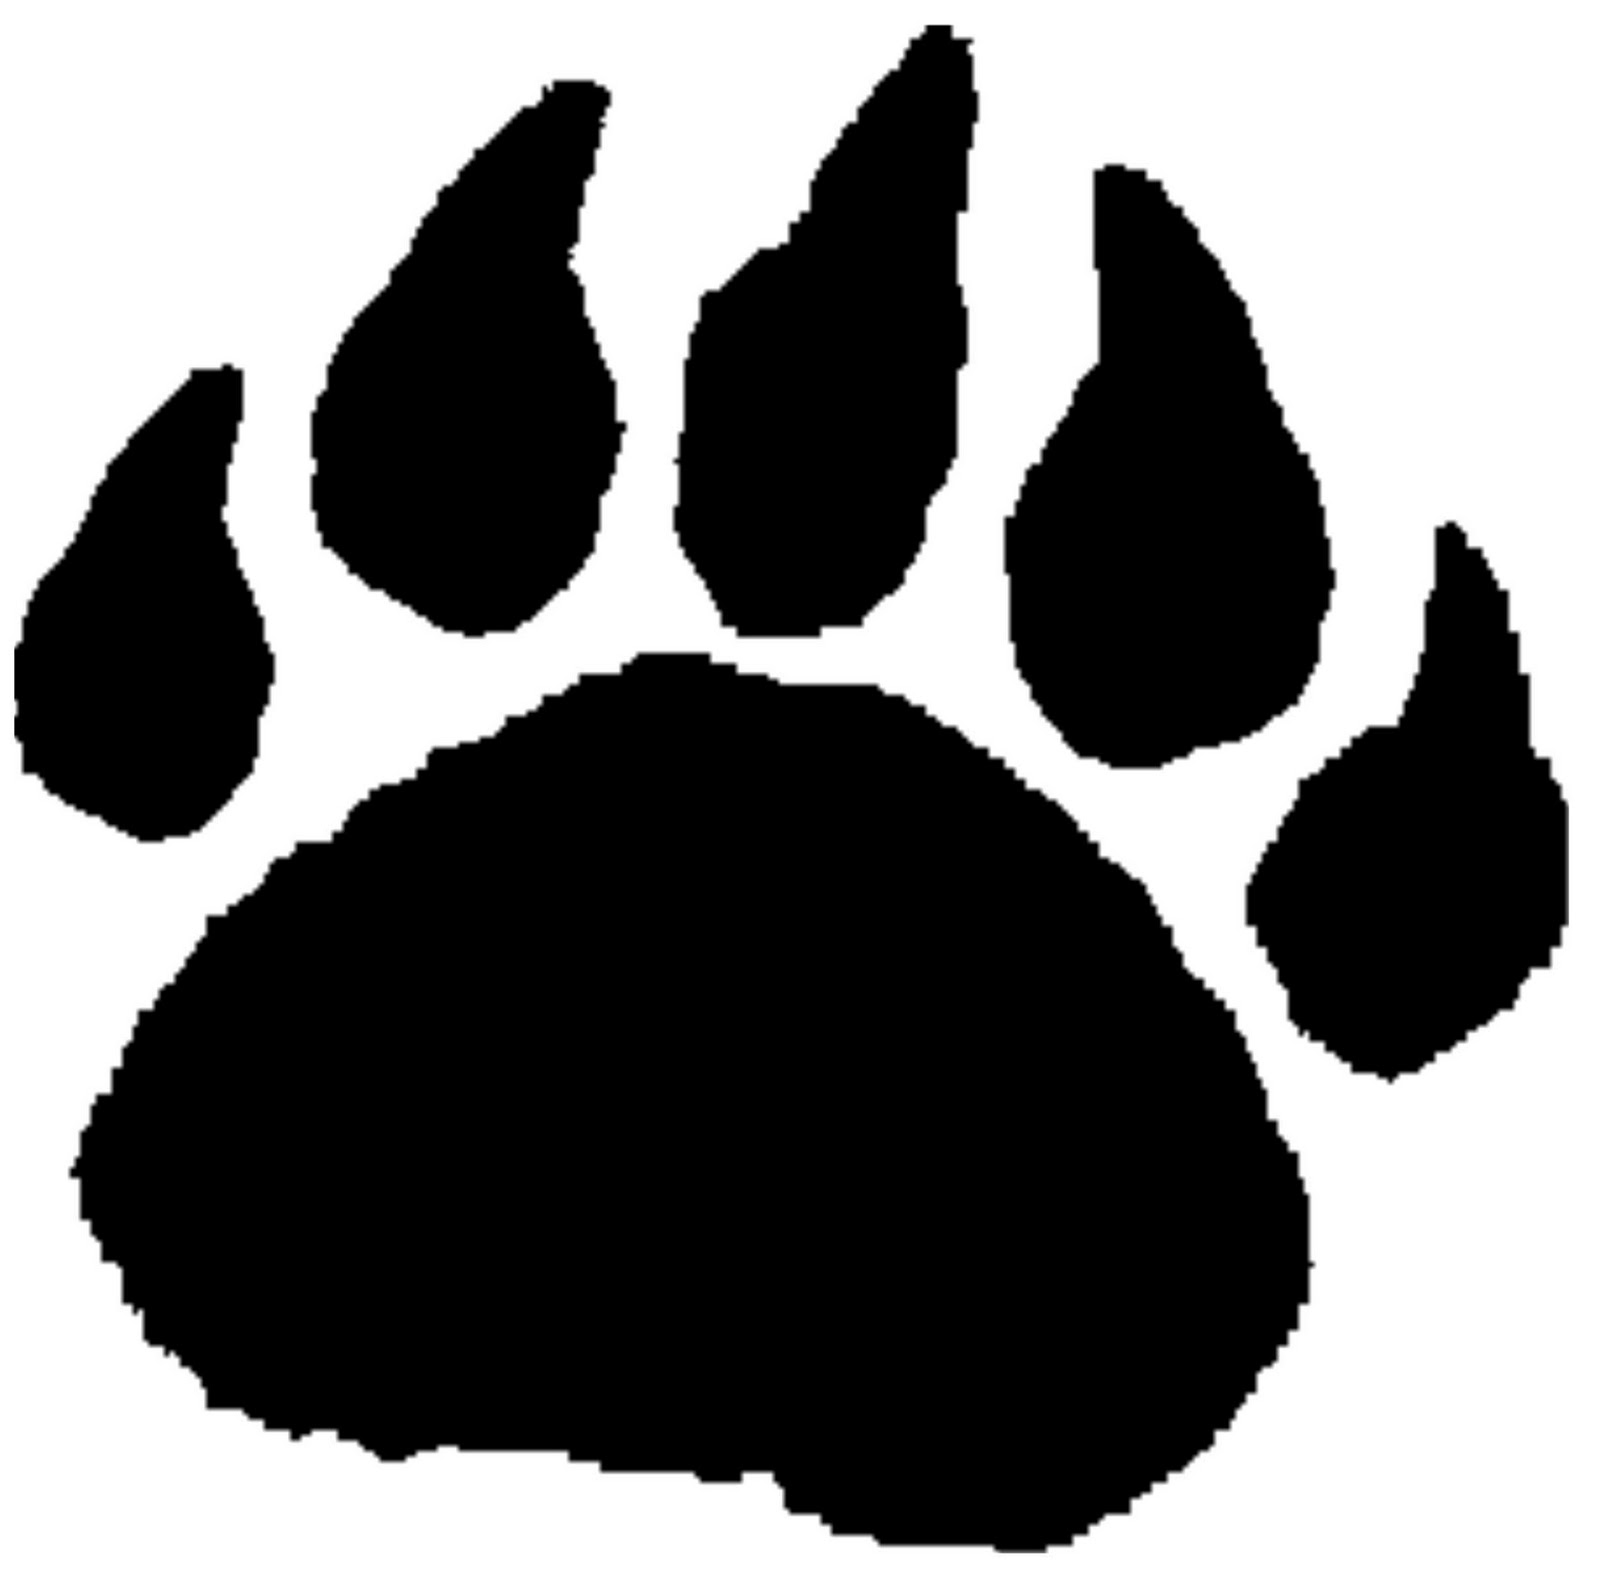 Black Bear Outline - ClipArt Best